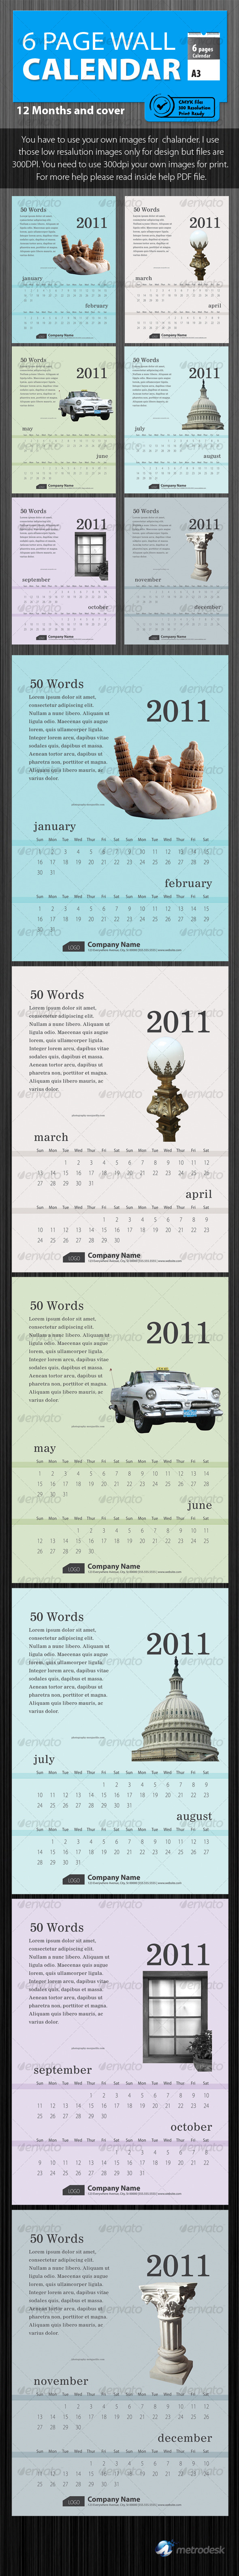 Wall calendar 2011 [6 Page] Print Ready